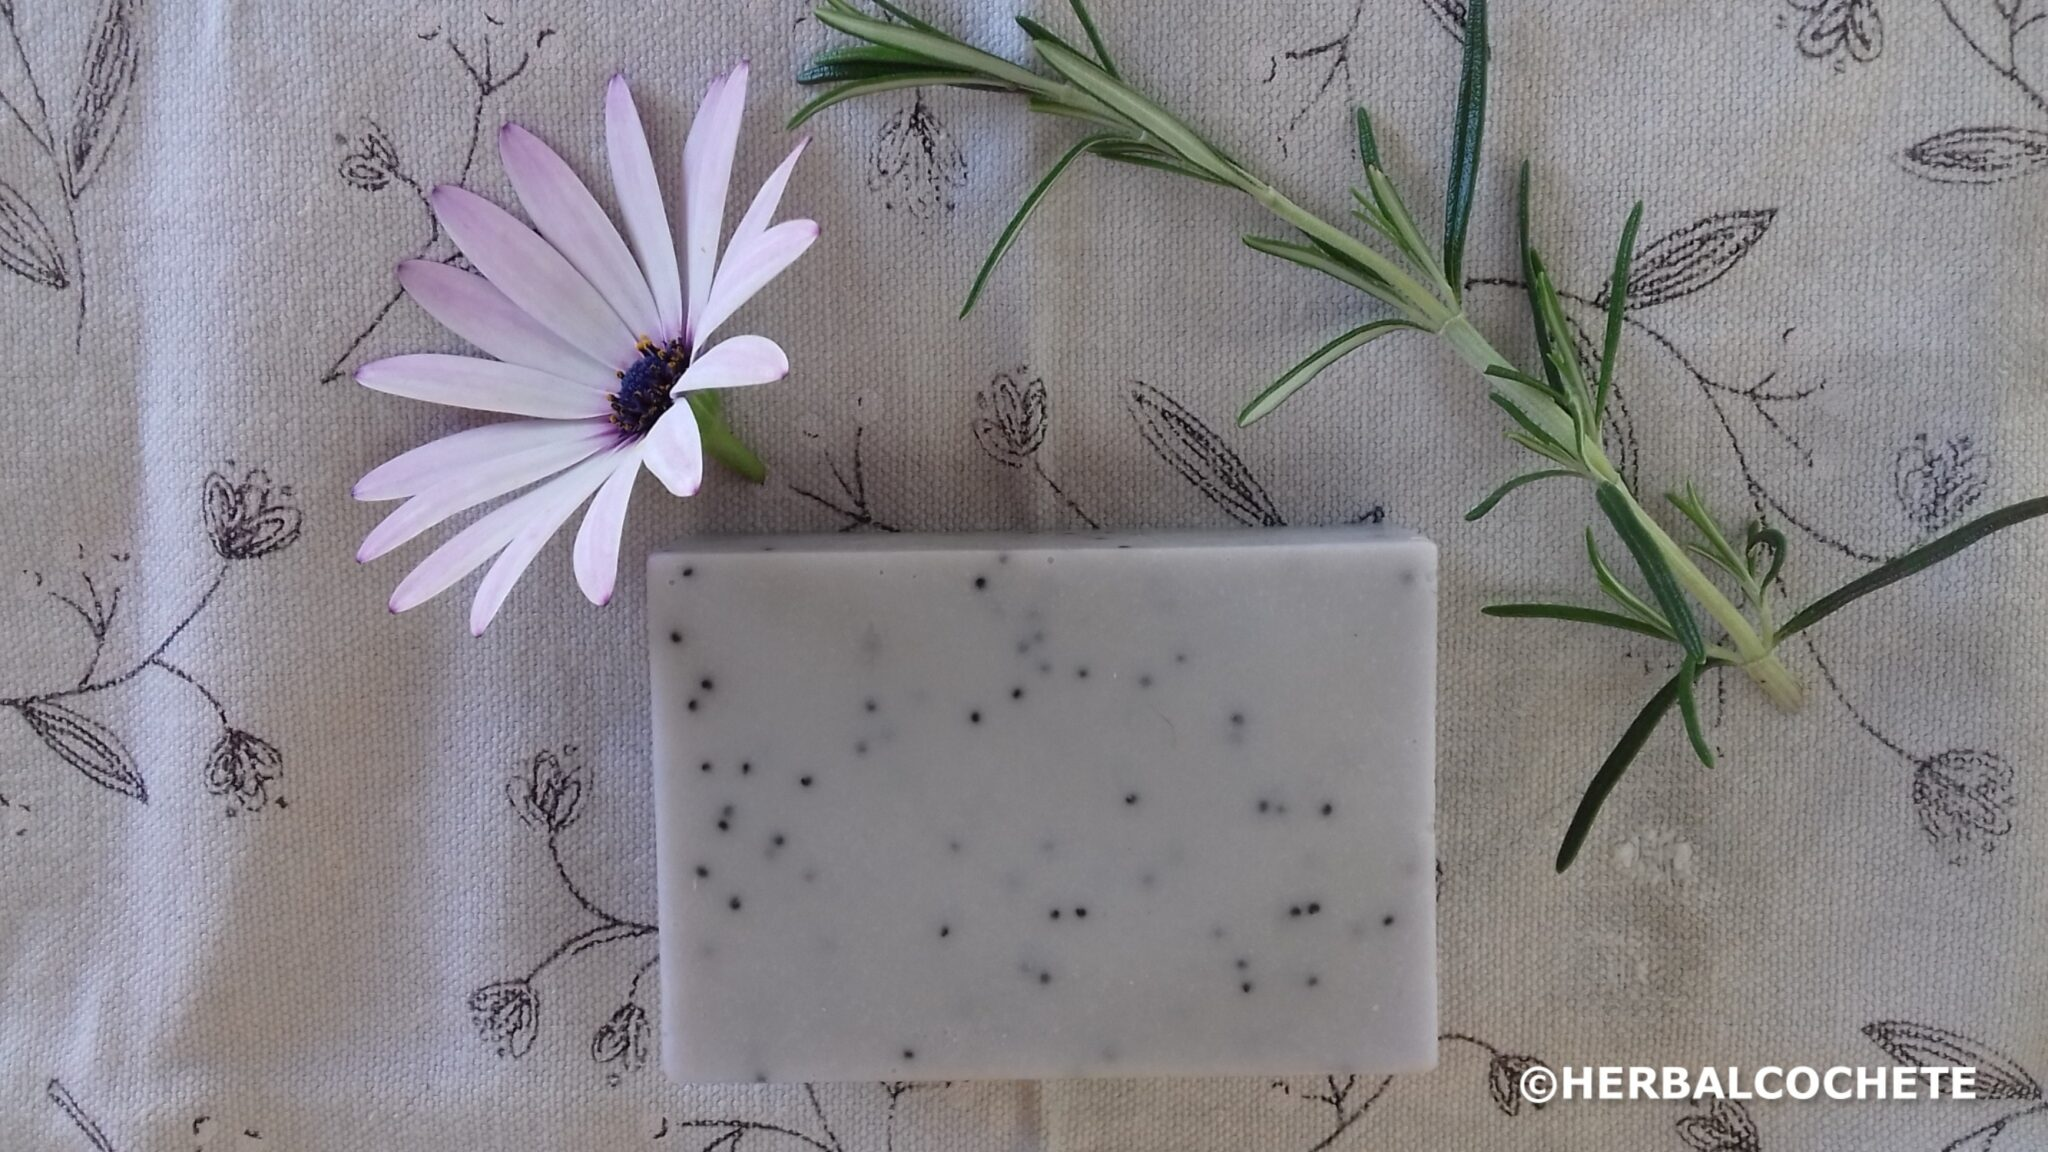 purple rosemary and lavender soap with poppy seeds with flower decoration